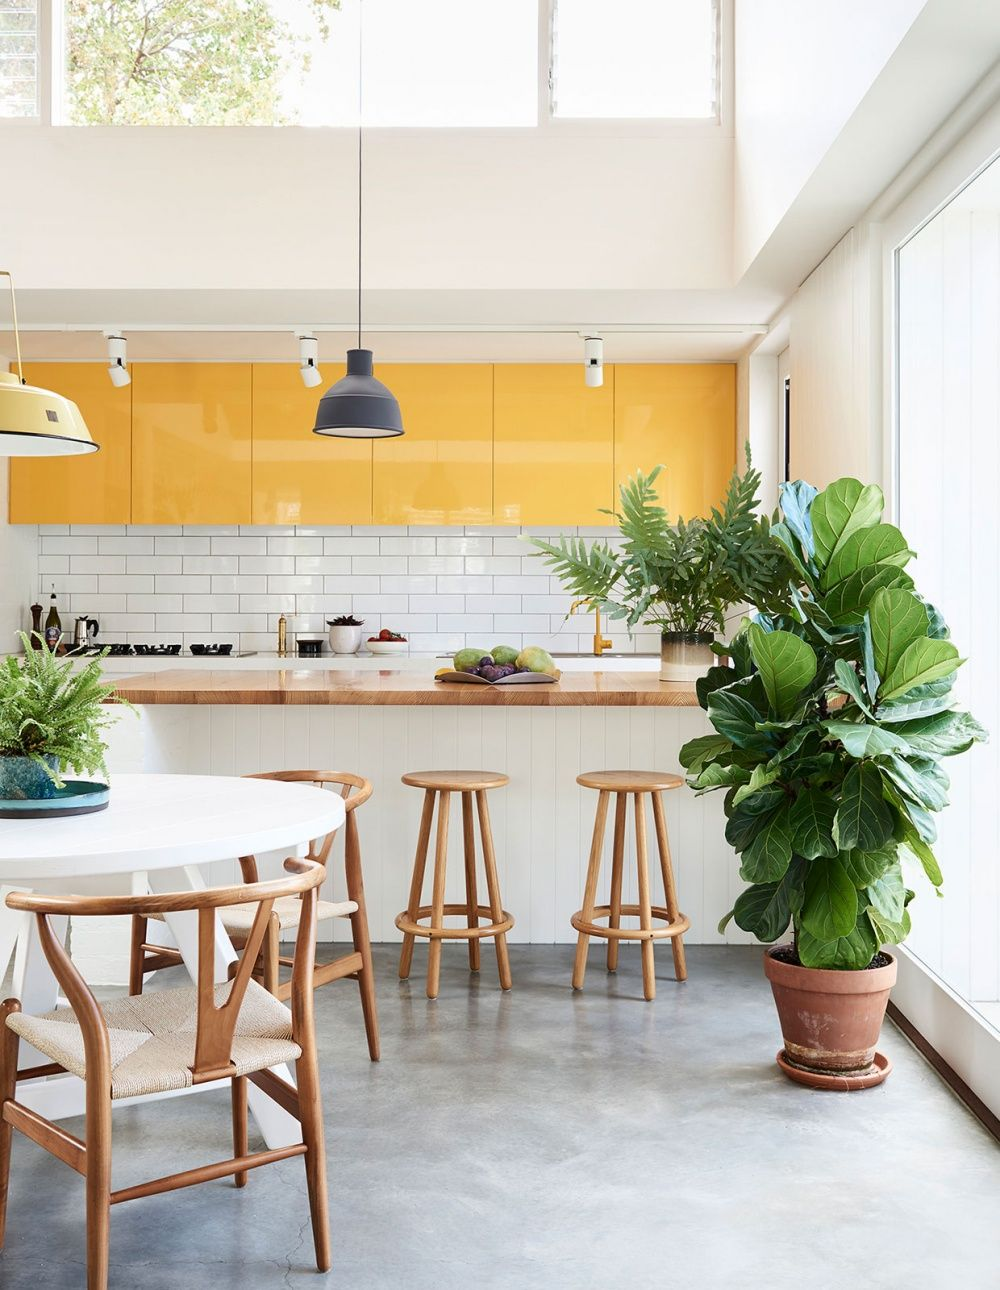 sunshine bright yellow cabinets in a modern light filled kitchen with subway tile and natural wood accents mwah